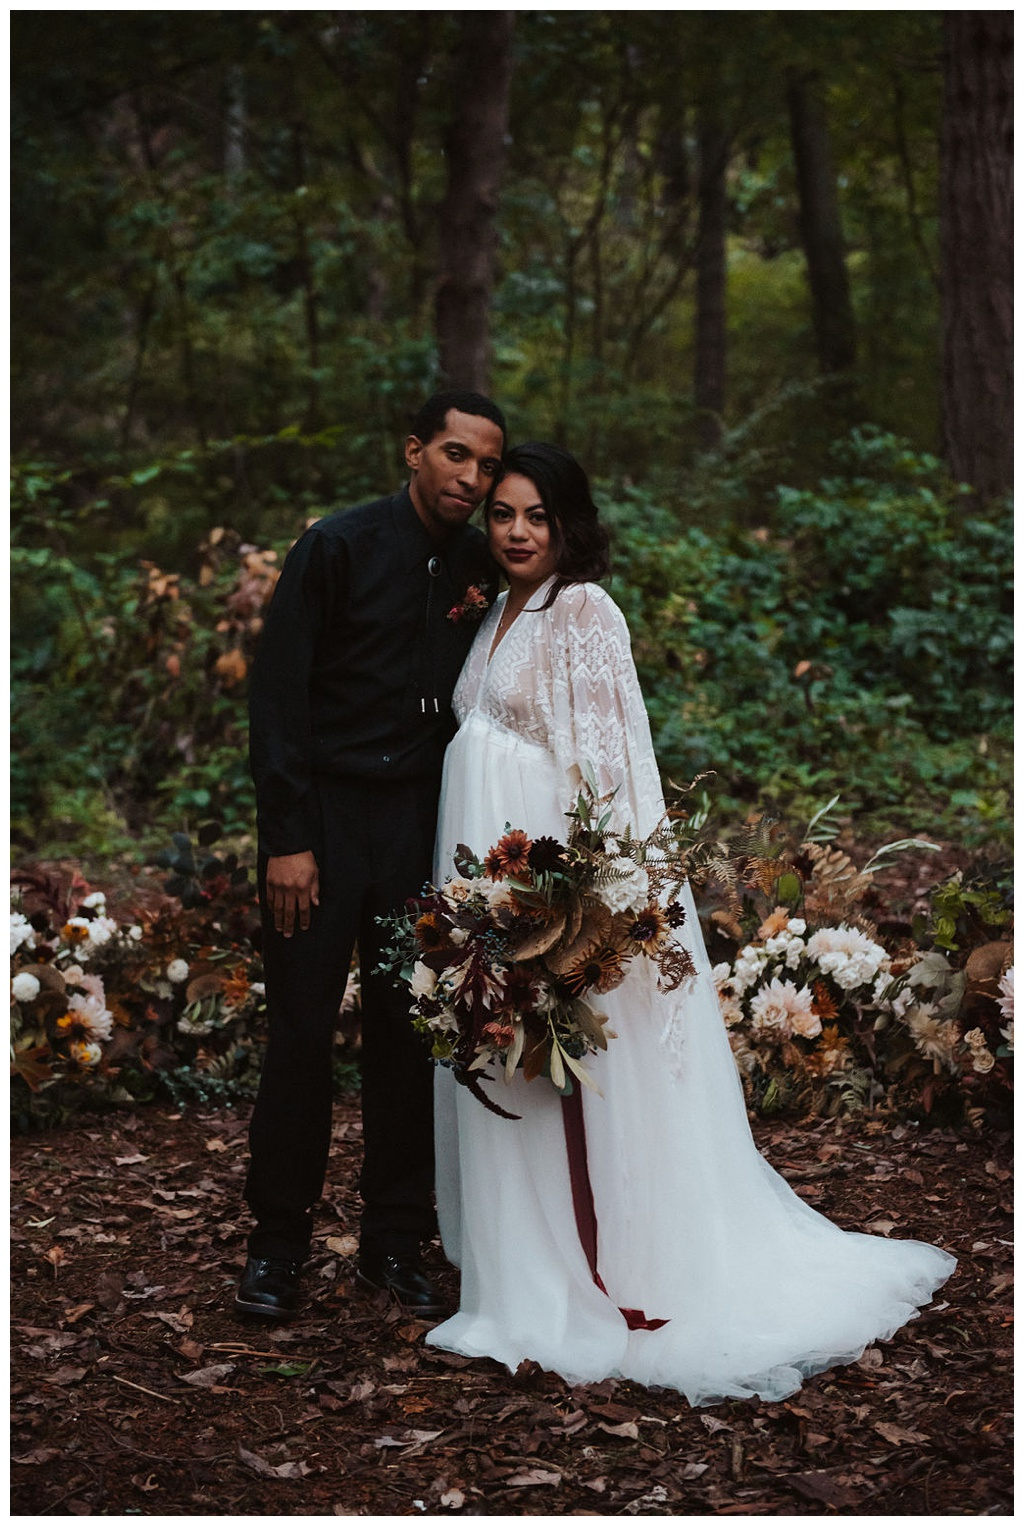 An interracial couple in front of their grounded arch for their woodland elopement, holding fall wedding bouquet